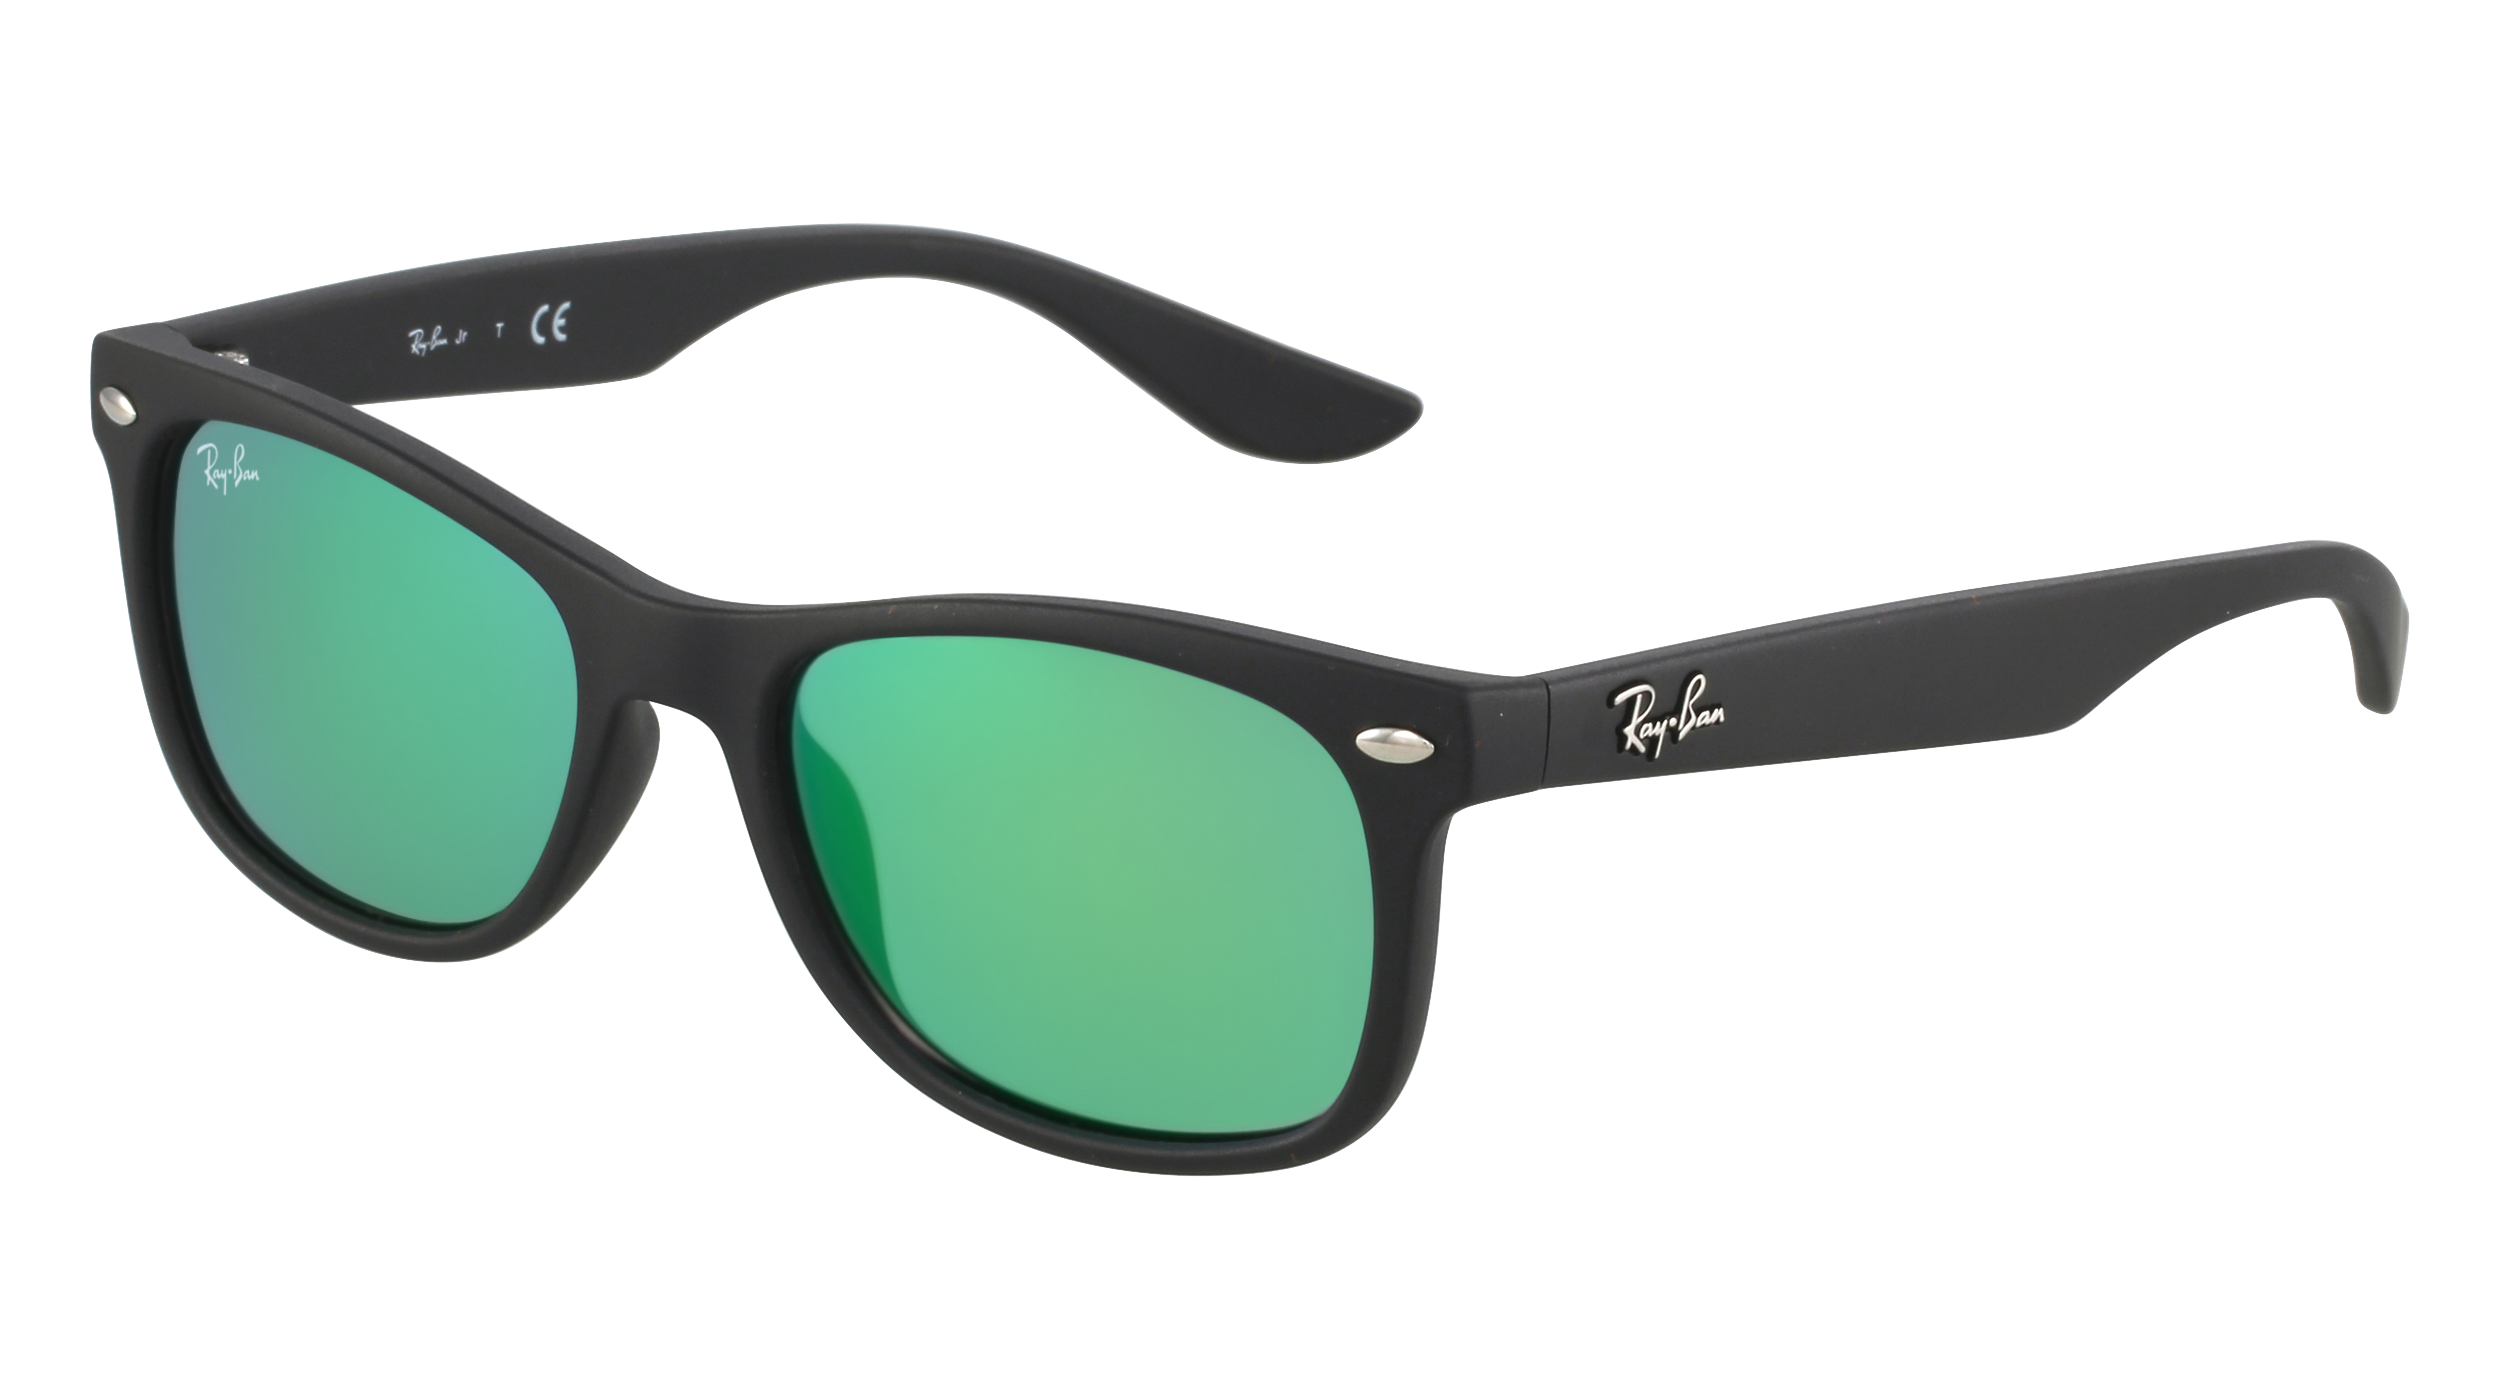 Ray-Ban RJ9052S-S-100S3R-48-16-130